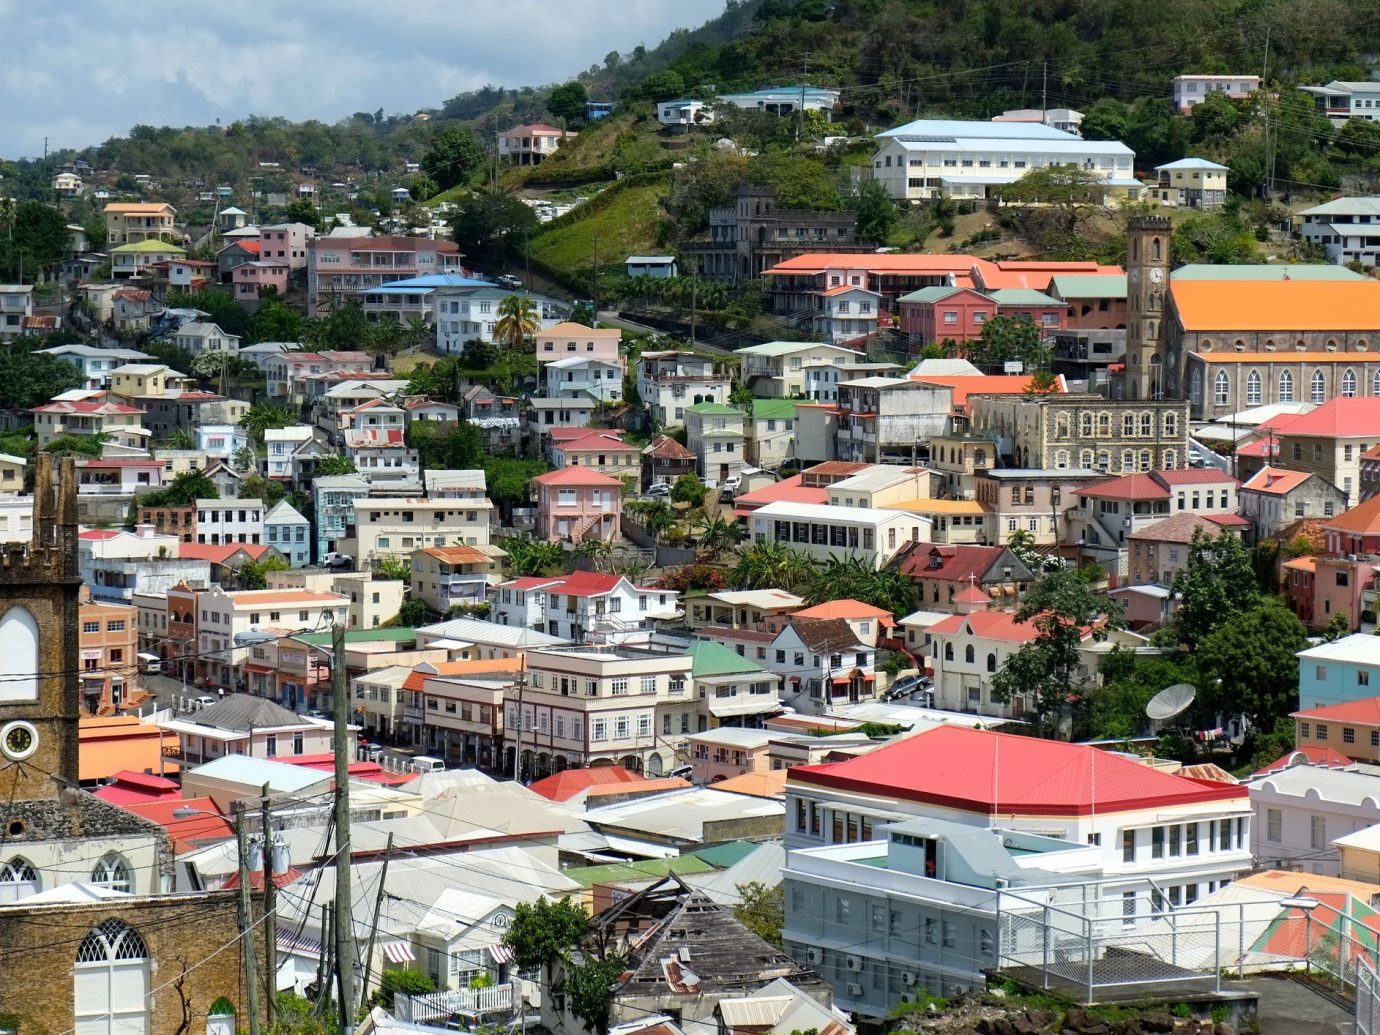 Trip Ideas building outdoor metropolitan area Town residential area geographical feature neighbourhood City bird's eye view cityscape human settlement aerial photography urban area suburb mountain Downtown metropolis Harbor Village skyline town square